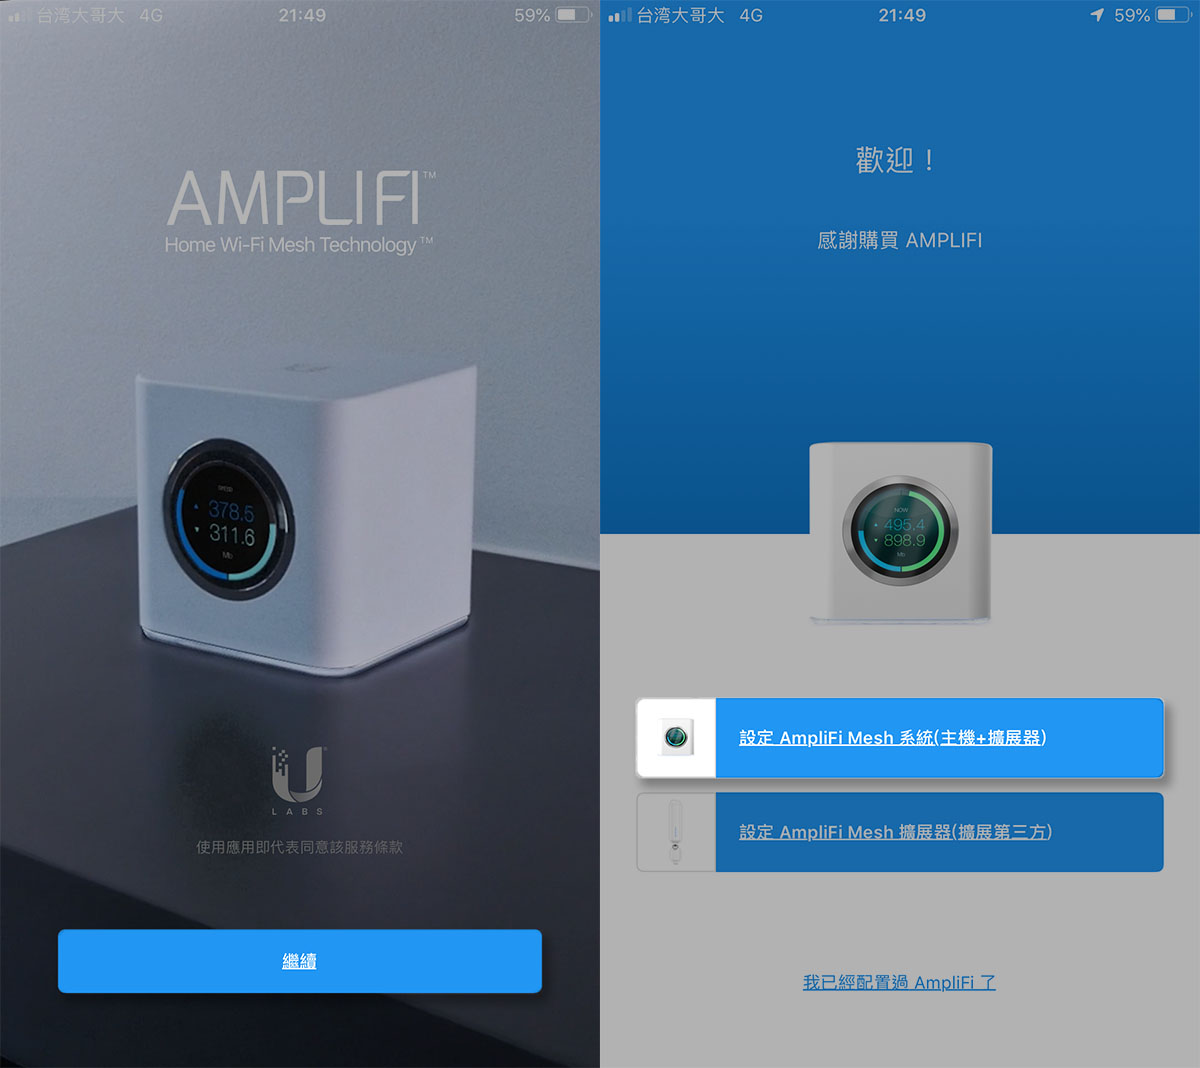 Ubiquiti AmpliFi Gamer's Edition 評測:Mesh WiFi 低延遲網路優化 25